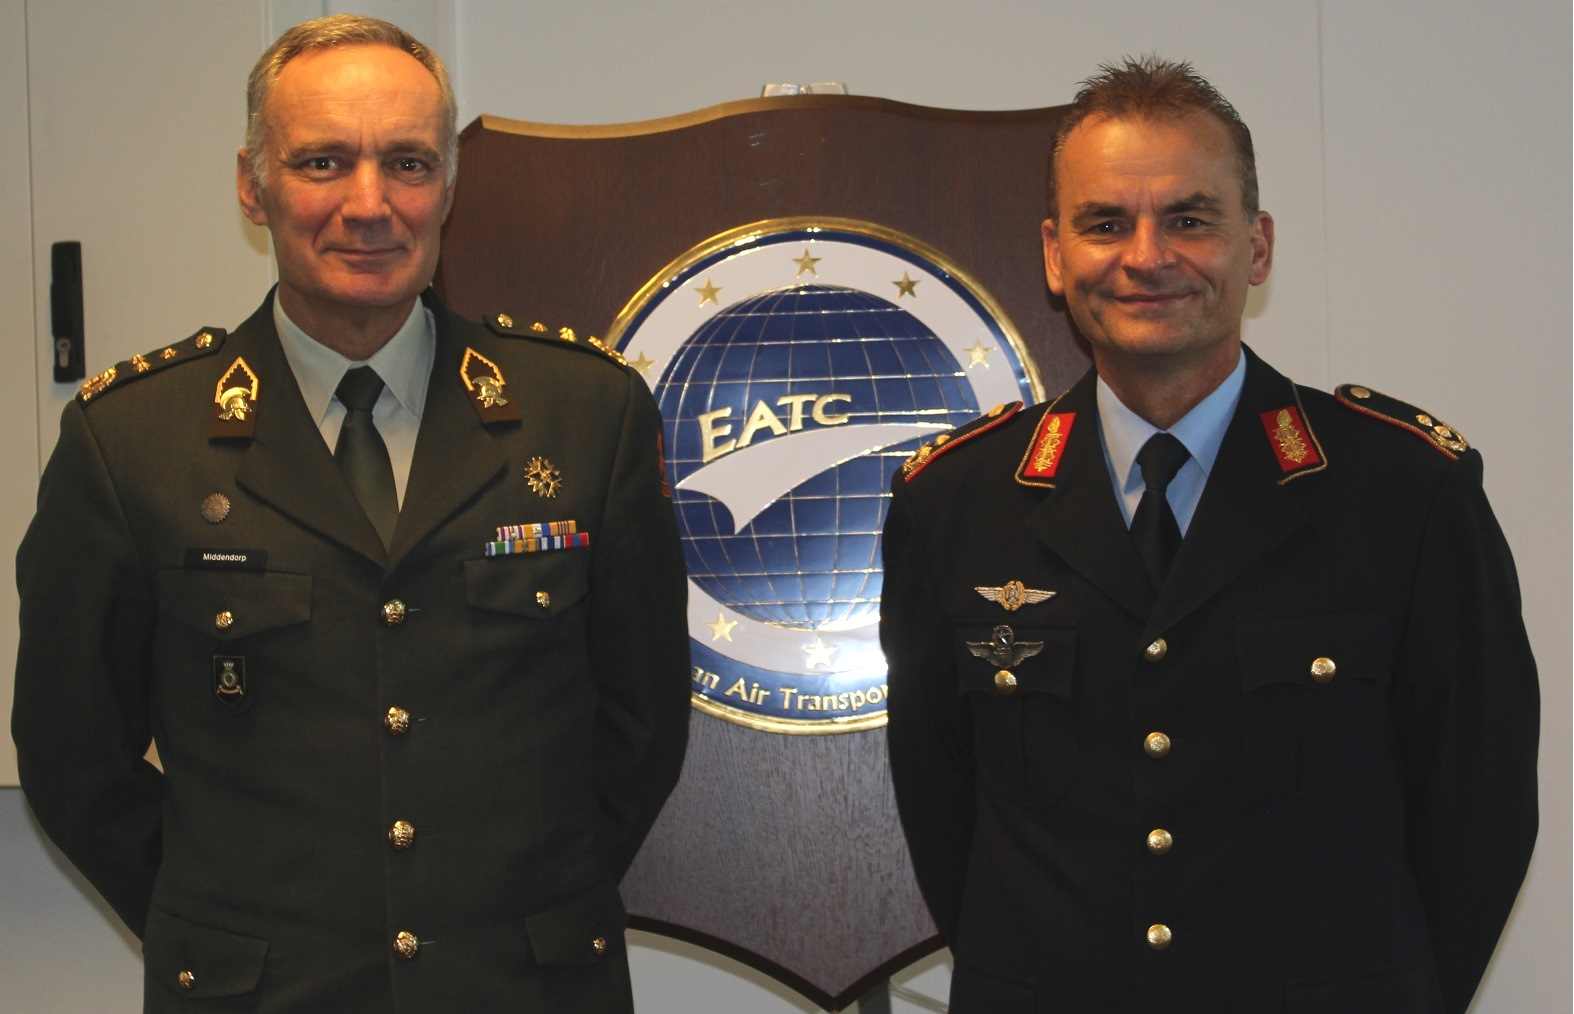 Dutch Chief of Defence visits the EATC